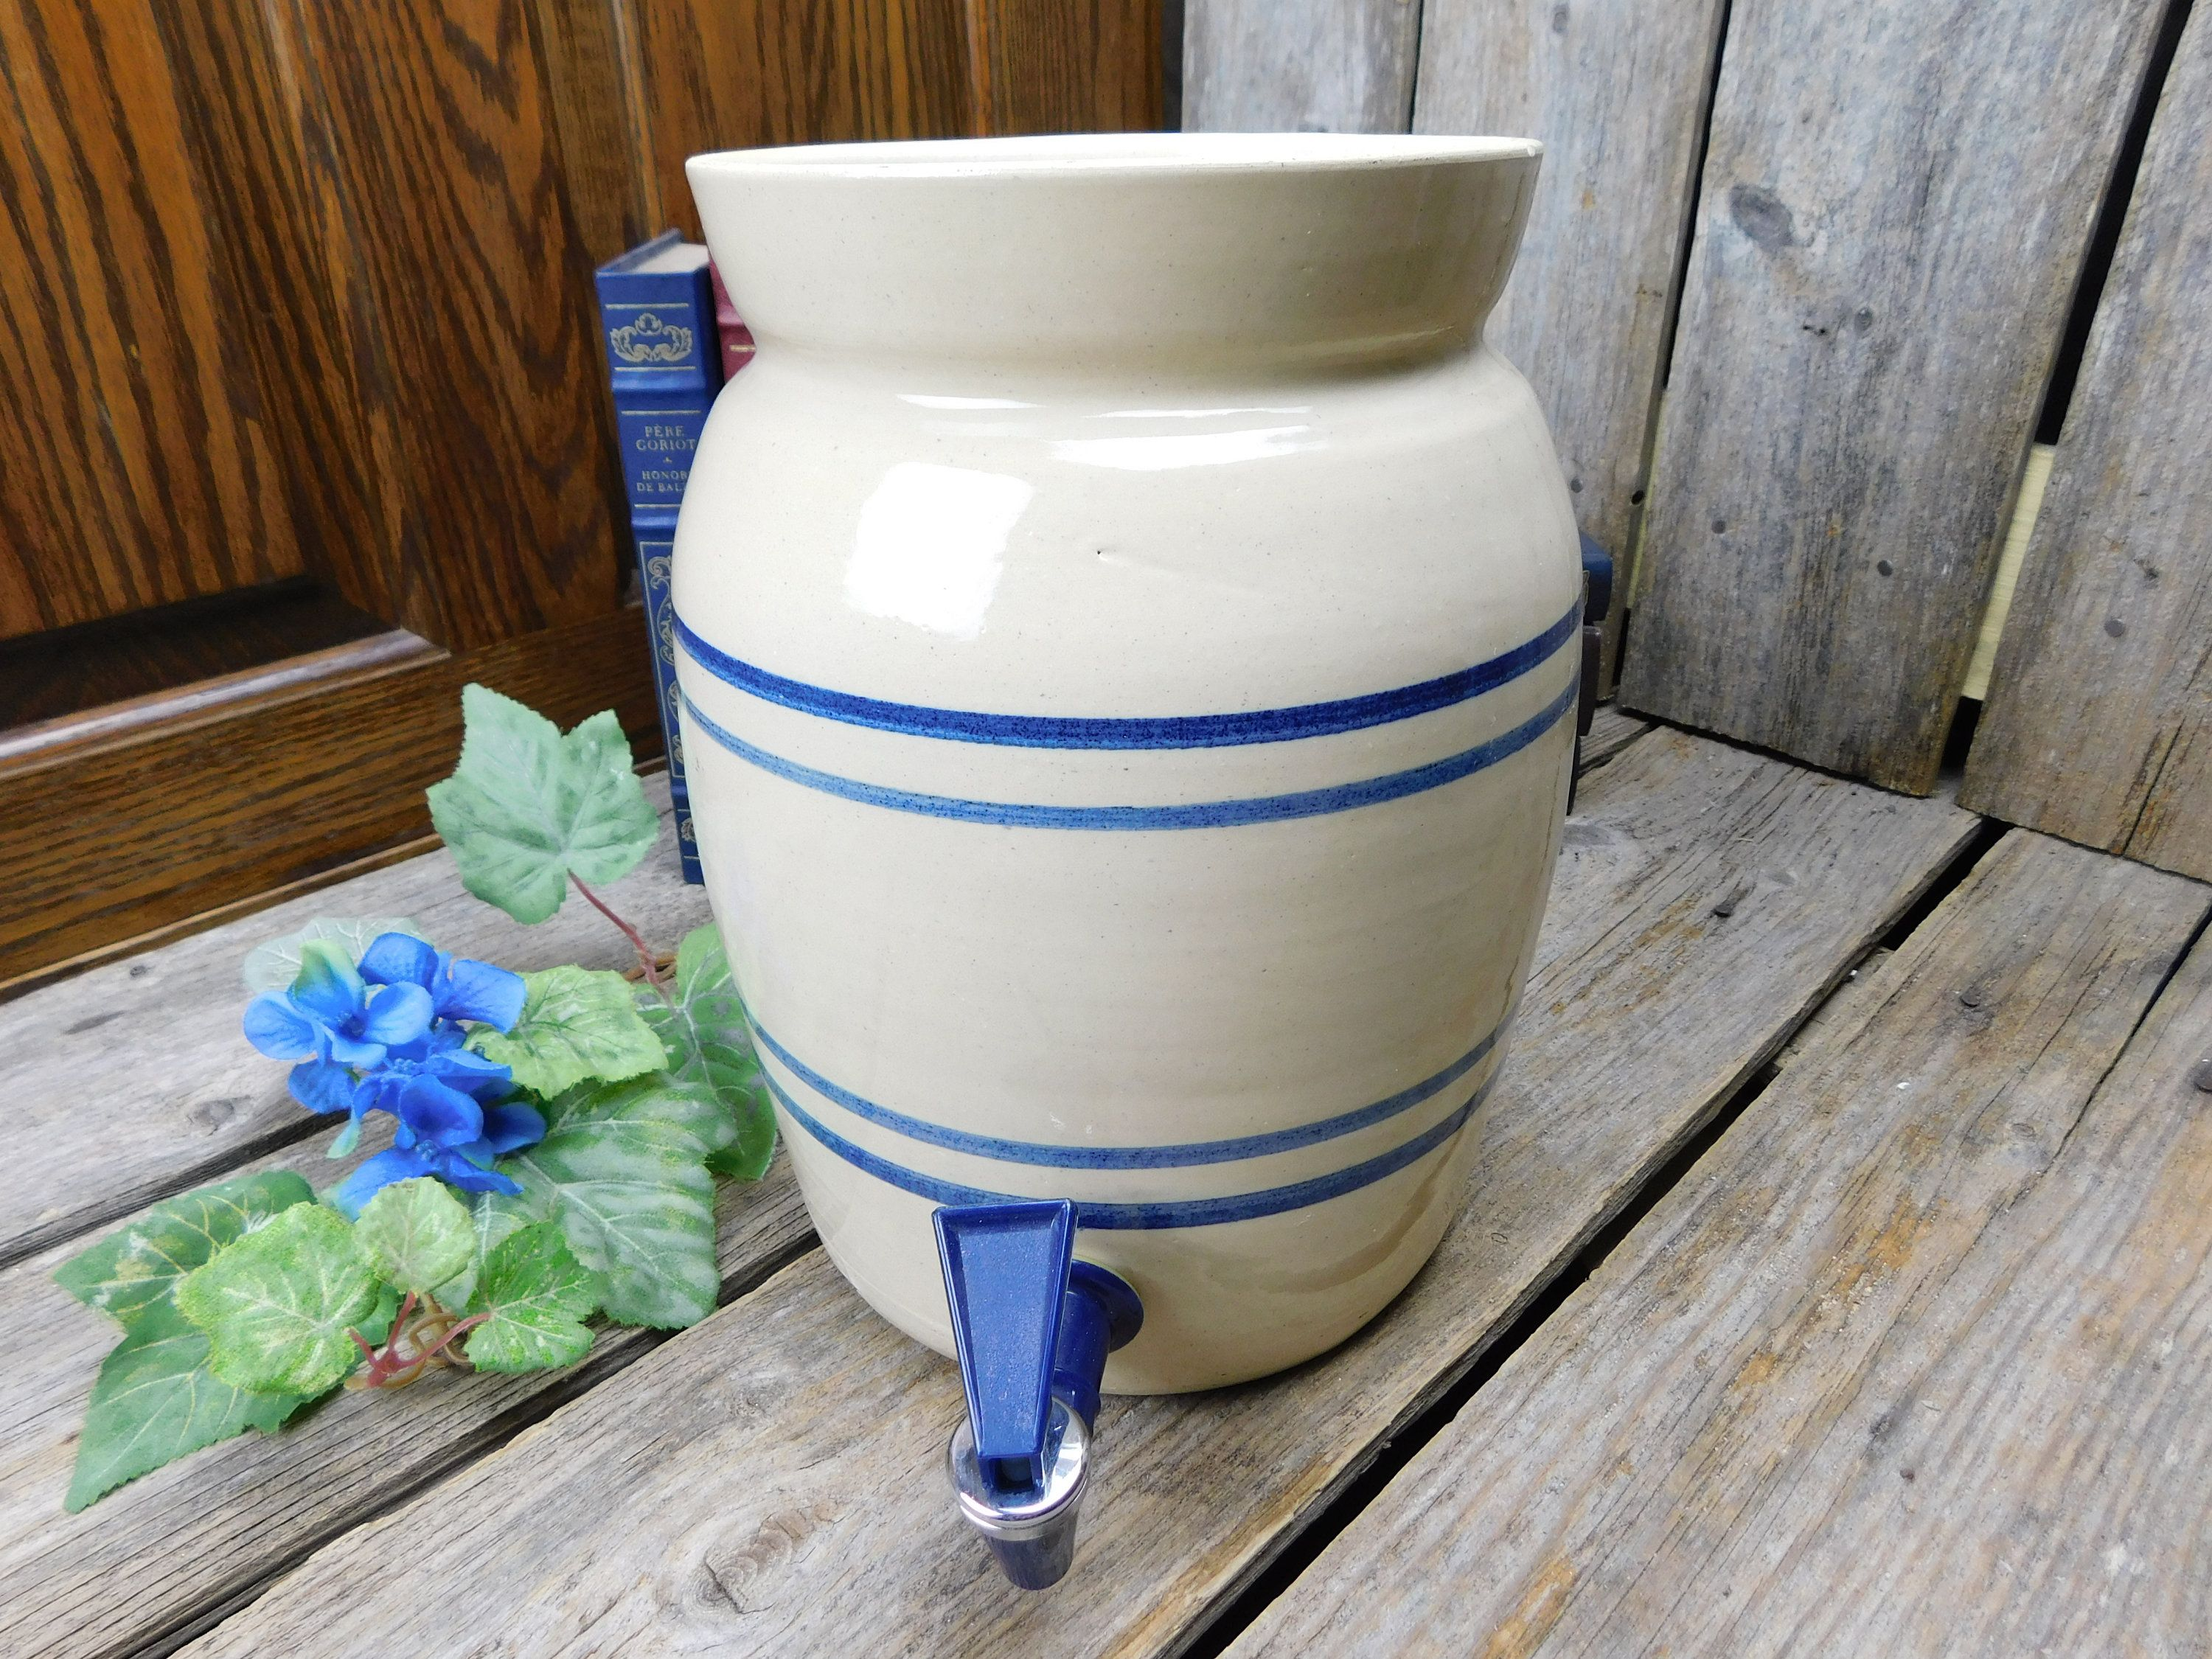 Vintage Marshall Pottery Crock Water Cooler With Spigot Marshall Texas By Allthatsvintage56 On Etsy Marshall Pottery Pottery Primitive Decorating